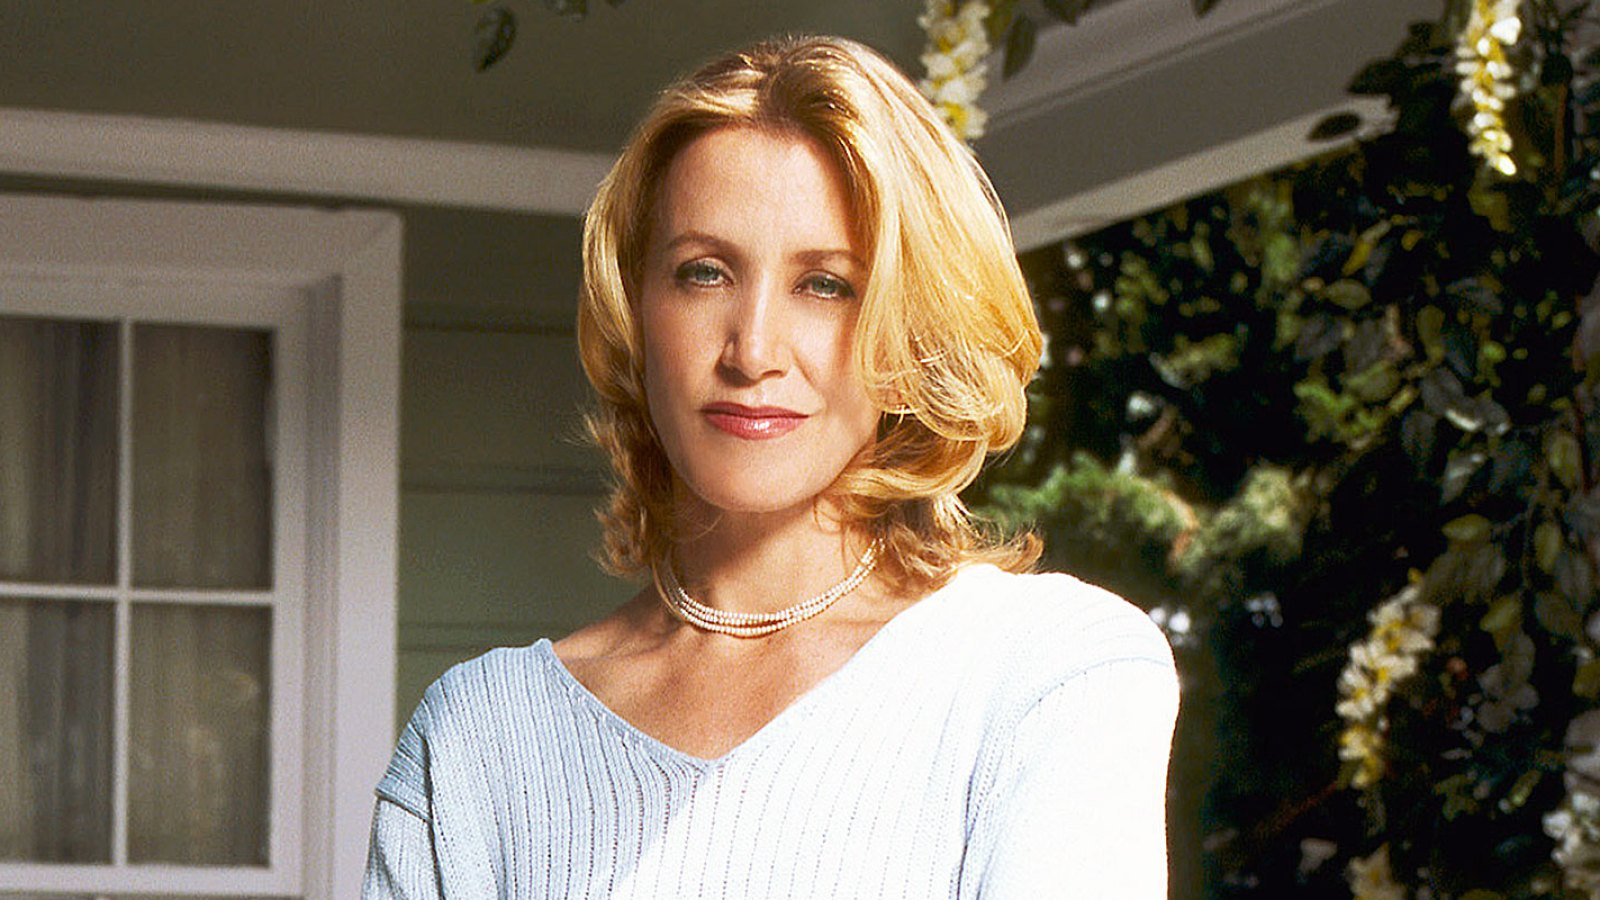 4fb064fe119 Felicity Huffman's 'Desperate Housewives' Character Also Paid $15,000 in  School Admissions Scam